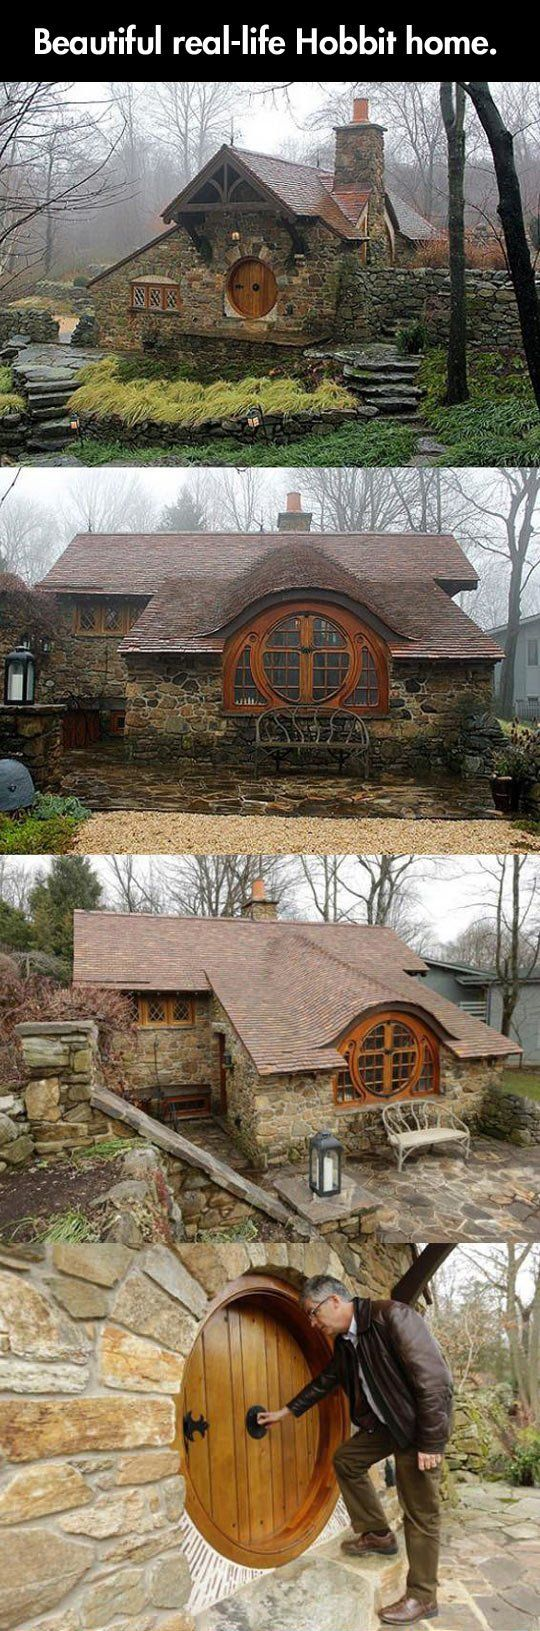 17 best images about homes i like on pinterest temples